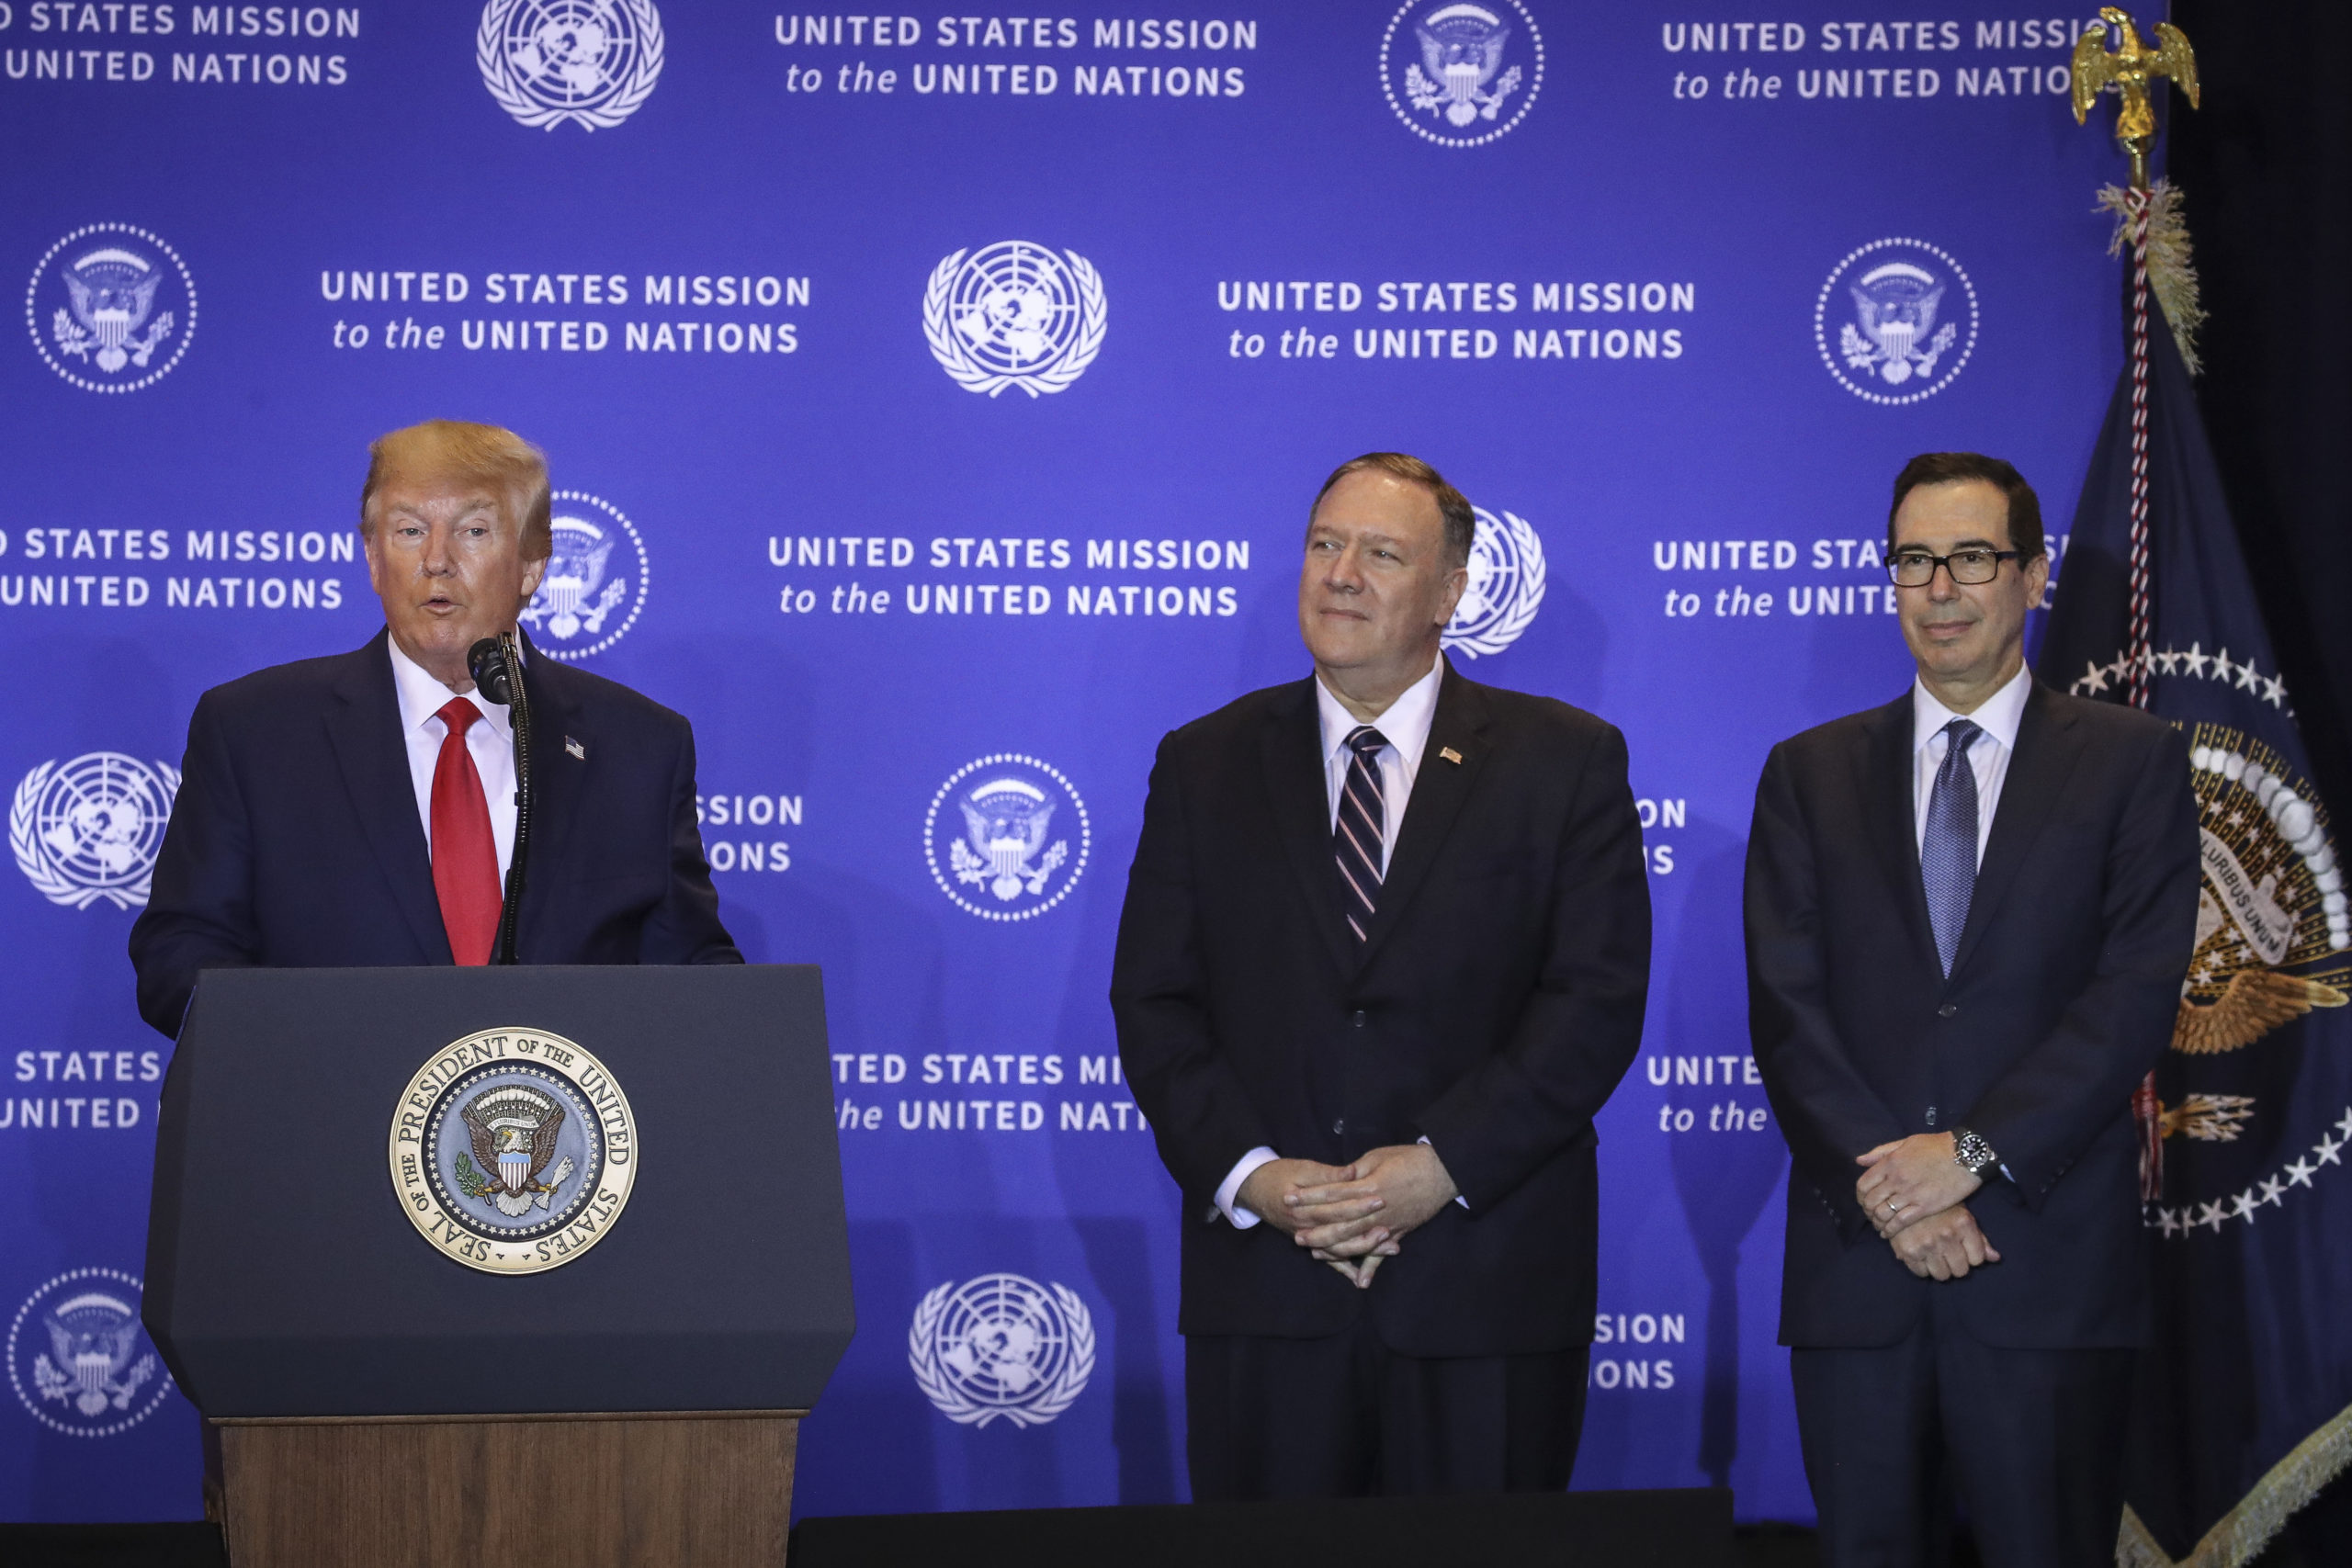 NEW YORK, NY - SEPTEMBER 25: U.S. President Donald Trump speaks as U.S. Secretary of State Mike Pompeo and Treasury Secretary Steven Mnuchin listen during a press conference on the sidelines of the United Nations General Assembly on September 25, 2019 in New York City. Speaker of the House Nancy Pelosi announced yesterday that the House will launch a formal impeachment inquiry into President Trump. (Photo by Drew Angerer/Getty Images)